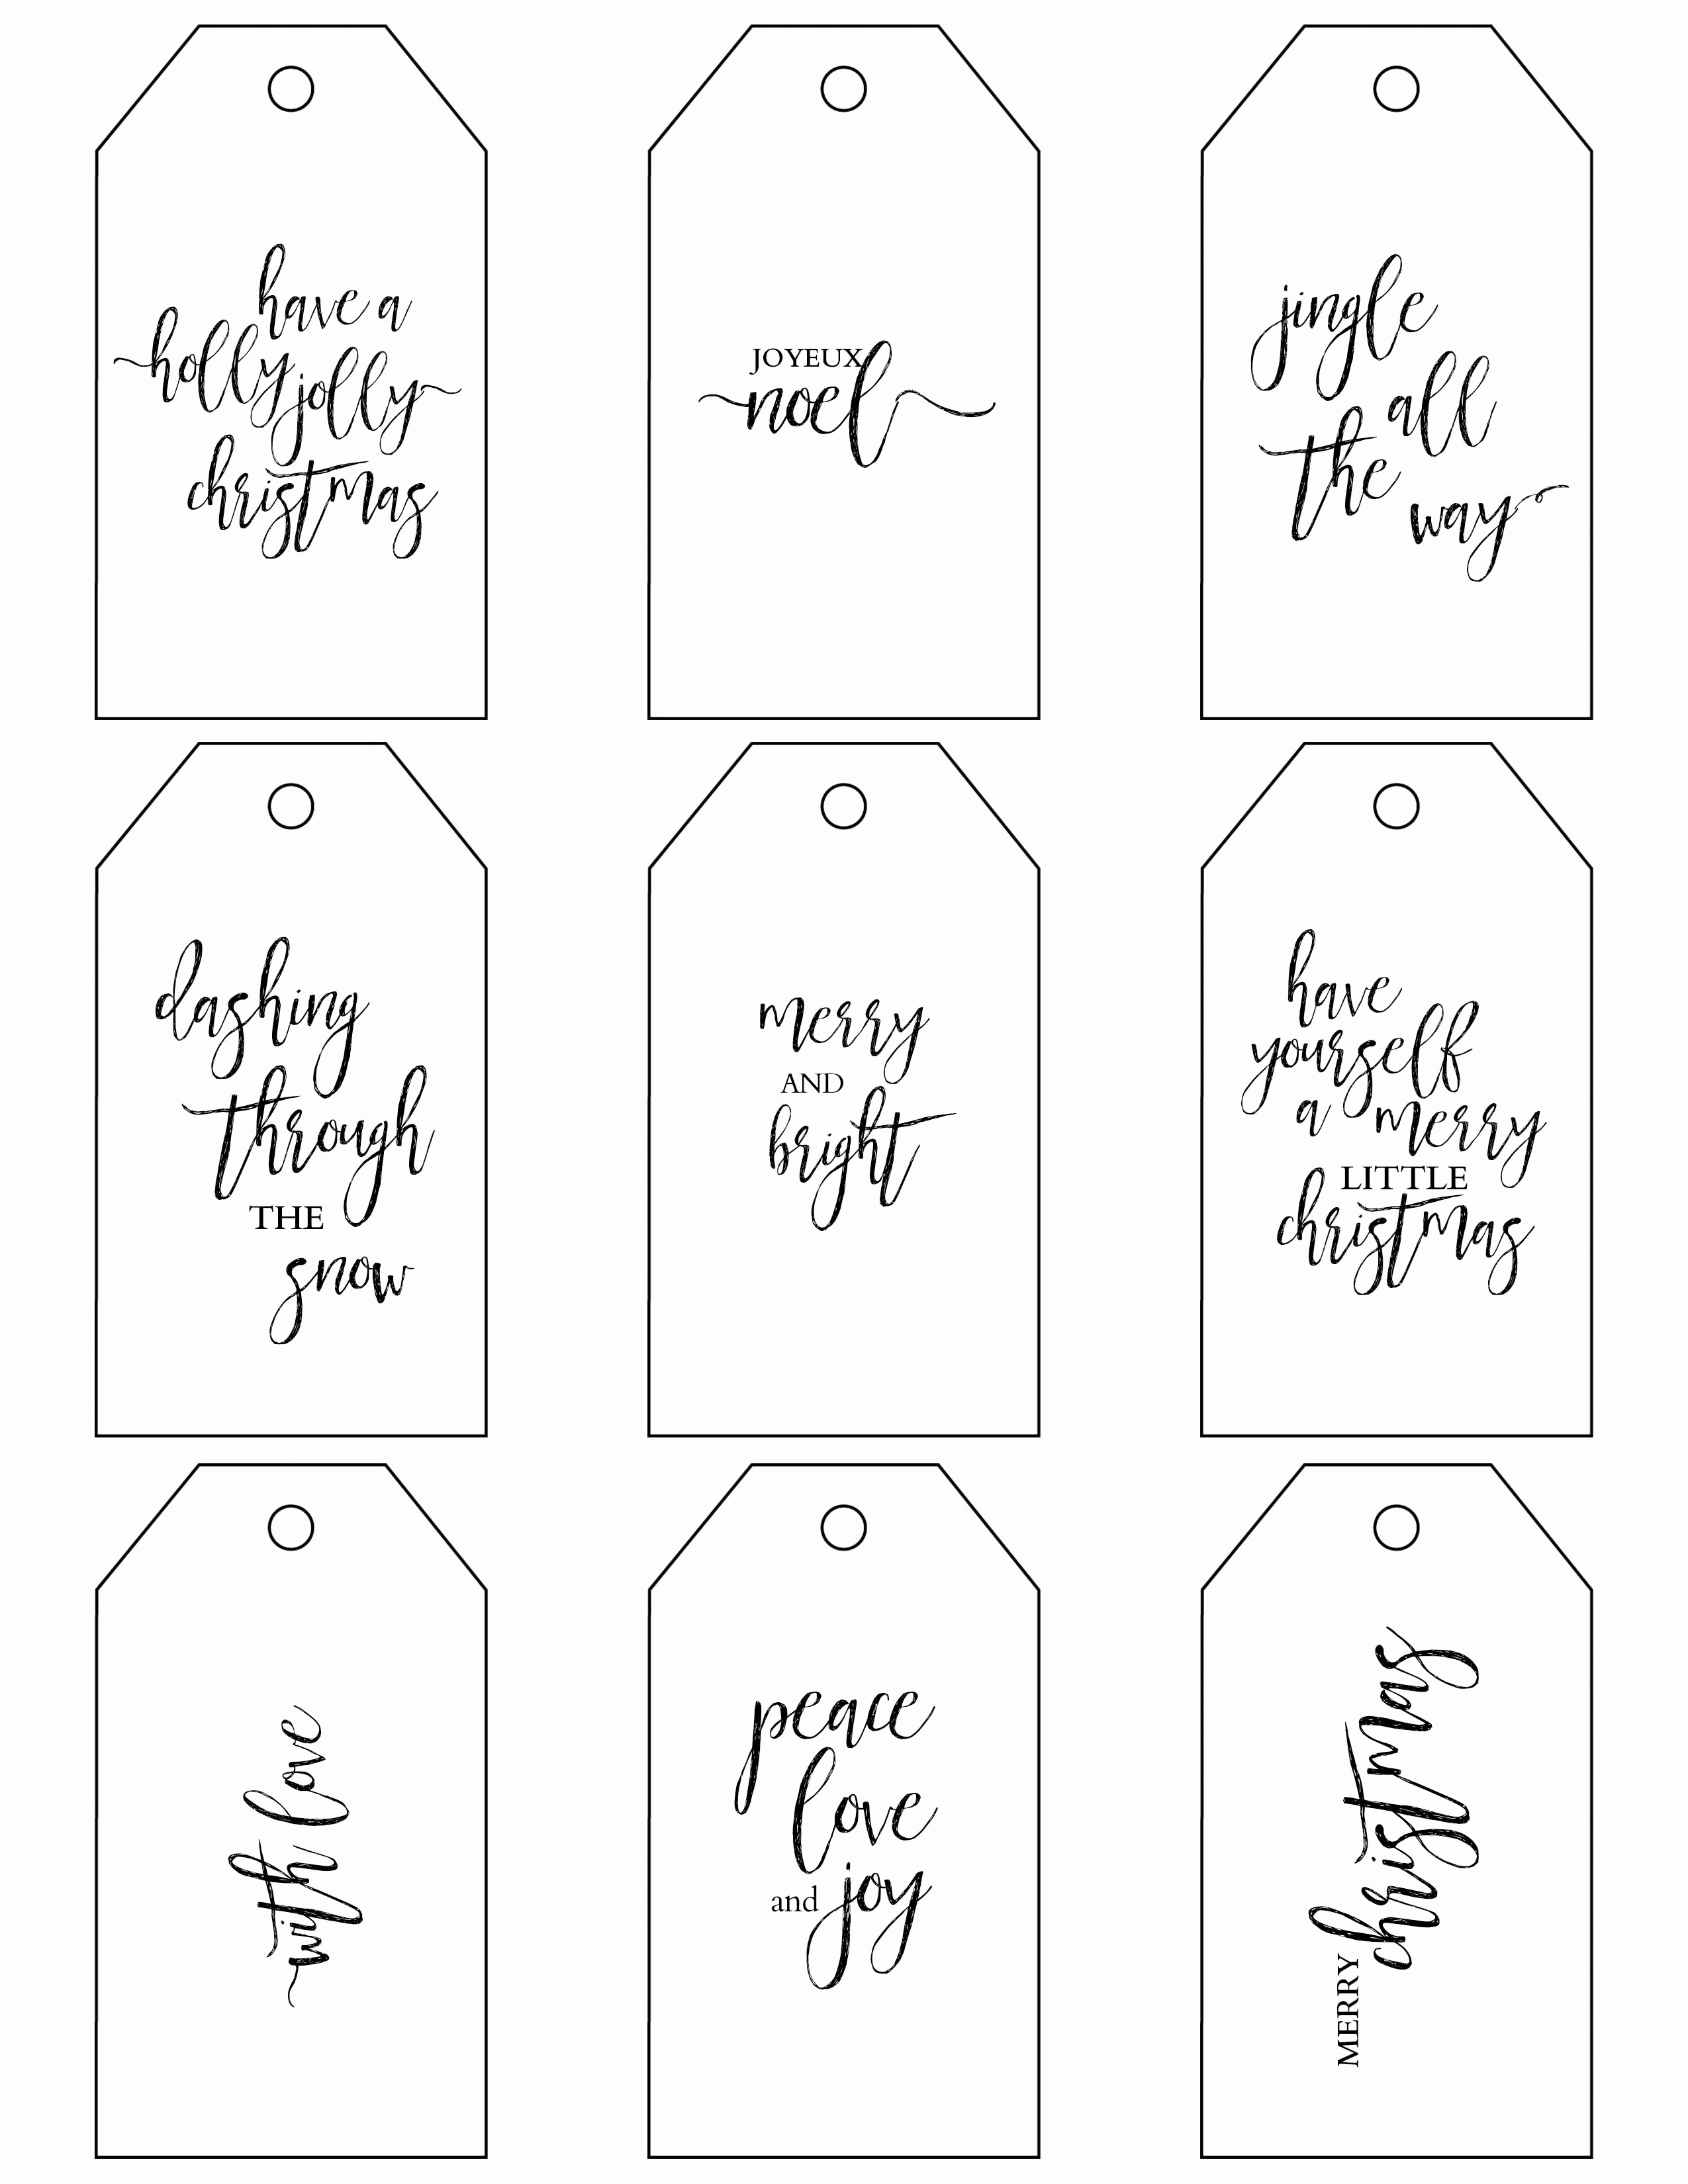 Free Printable Gift Tags Personalized Best Of Printable Christmas Gift Tags Make Holiday Wrapping Simple